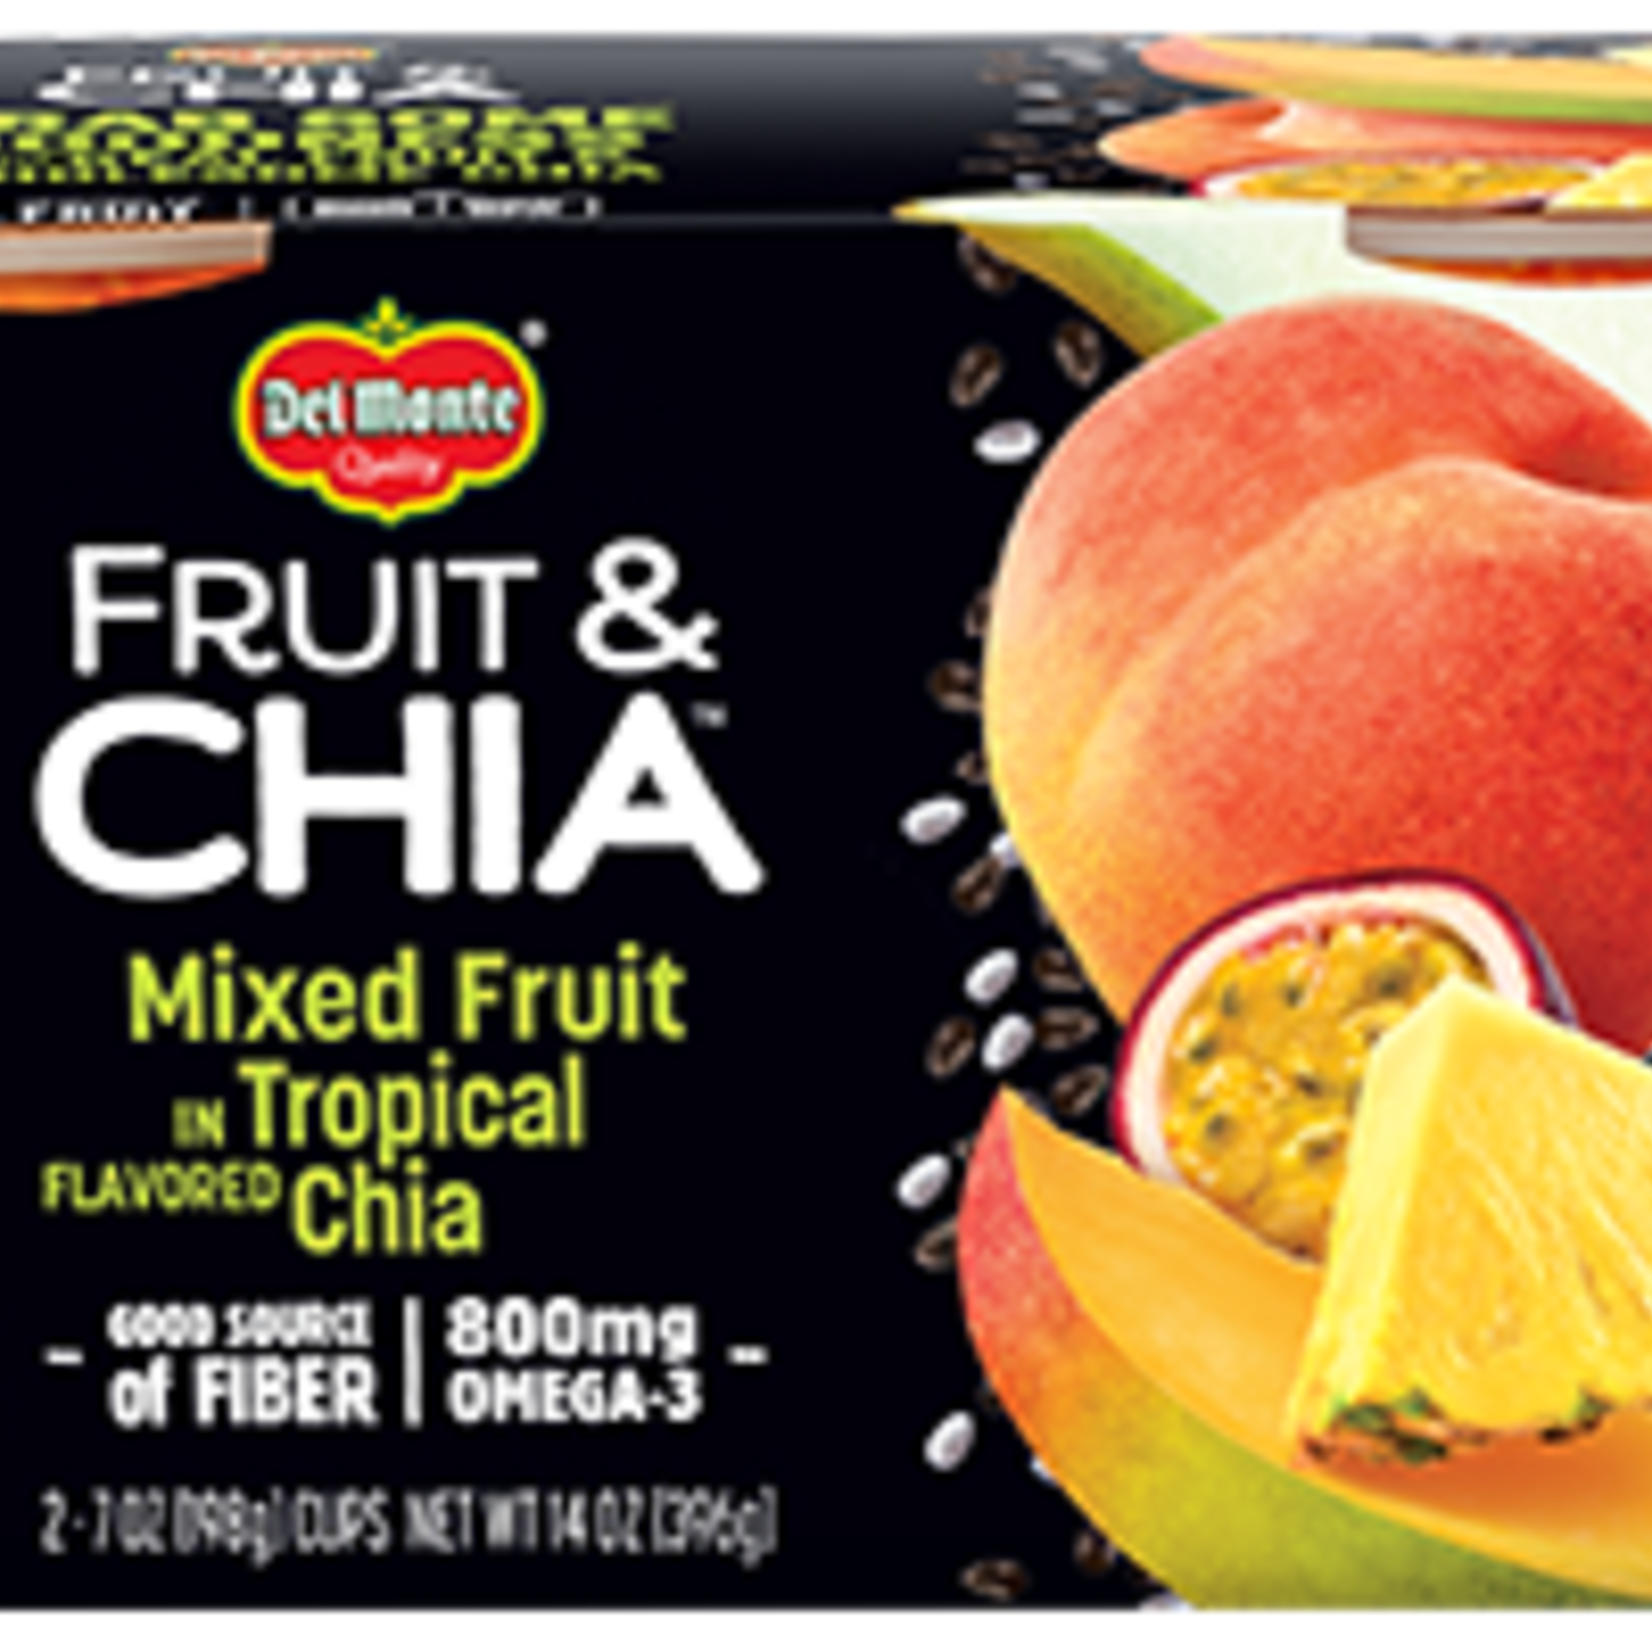 Del Monte Fruit & Chia Mixed Fruit in Topical Chia 2x198g